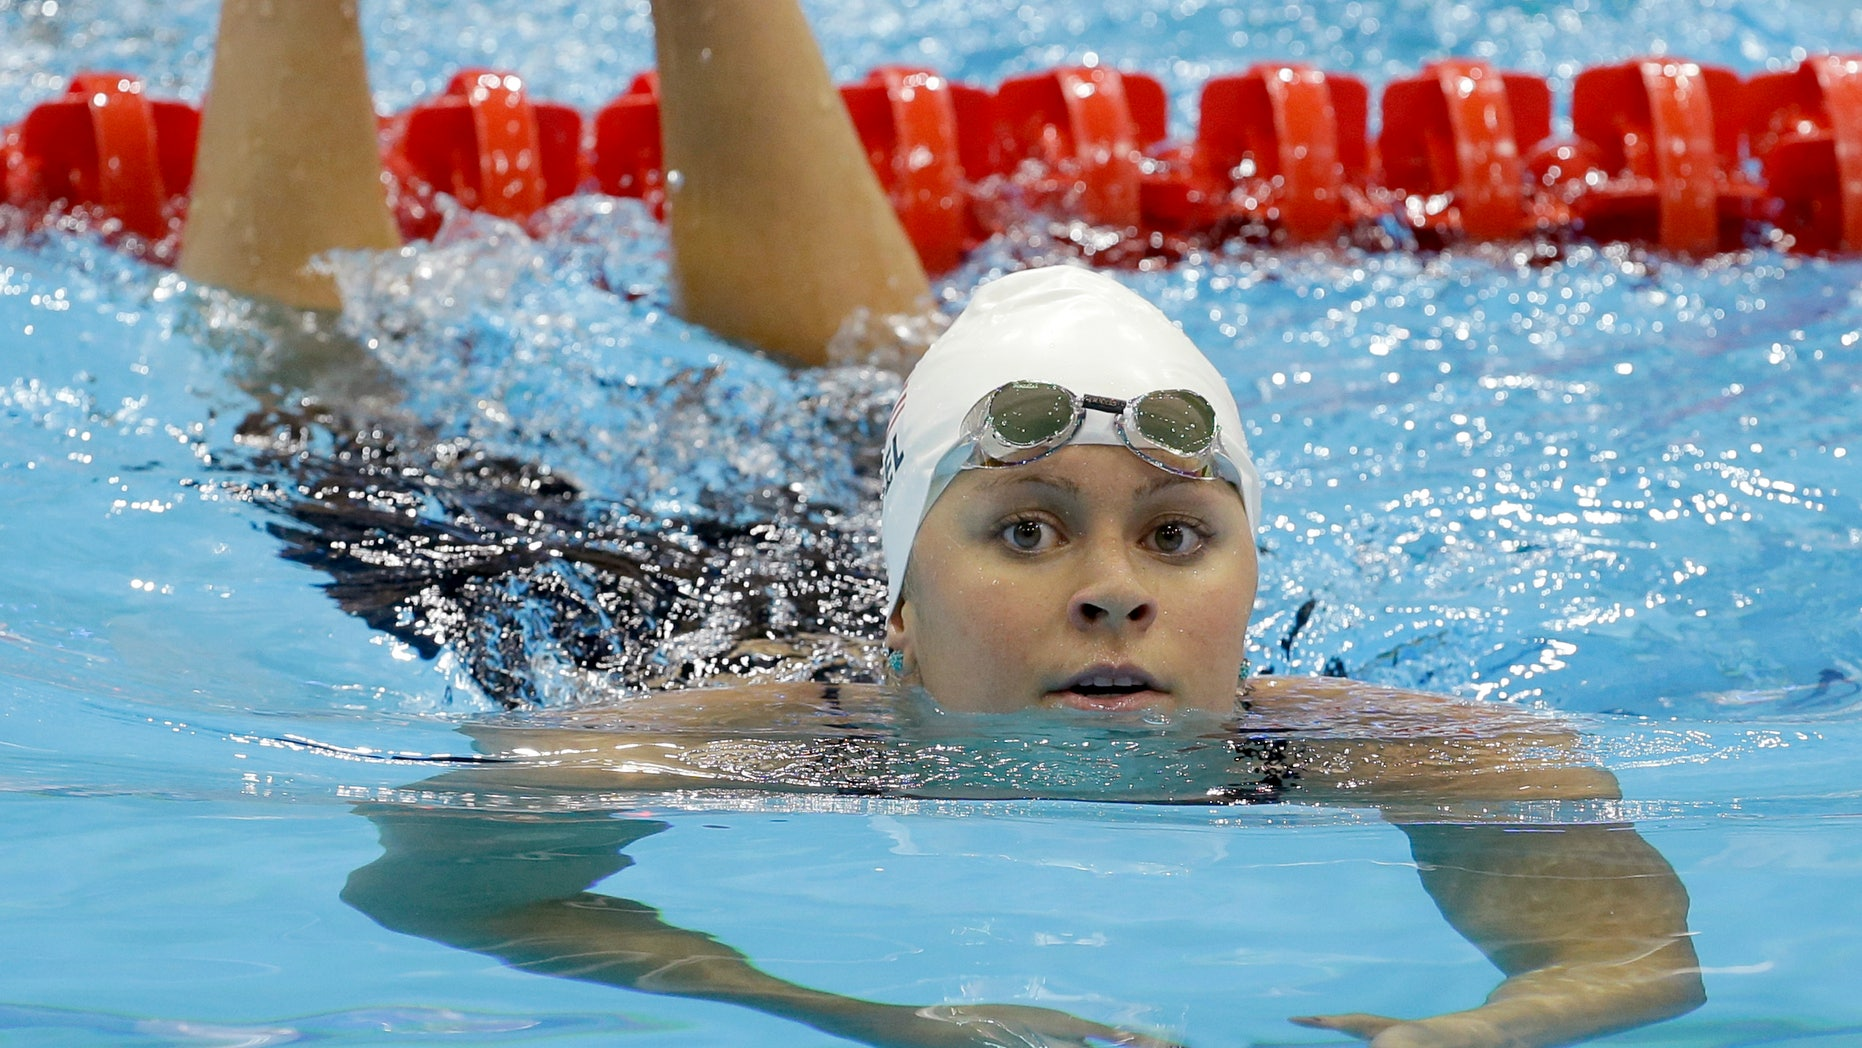 United States' Elizabeth Beisel reacts after competing in a women's 200-meter backstroke swimming heat at the Aquatics Centre in the Olympic Park during the 2012 Summer Olympics in London, Thursday, Aug. 2, 2012. (AP Photo/Lee Jin-man)